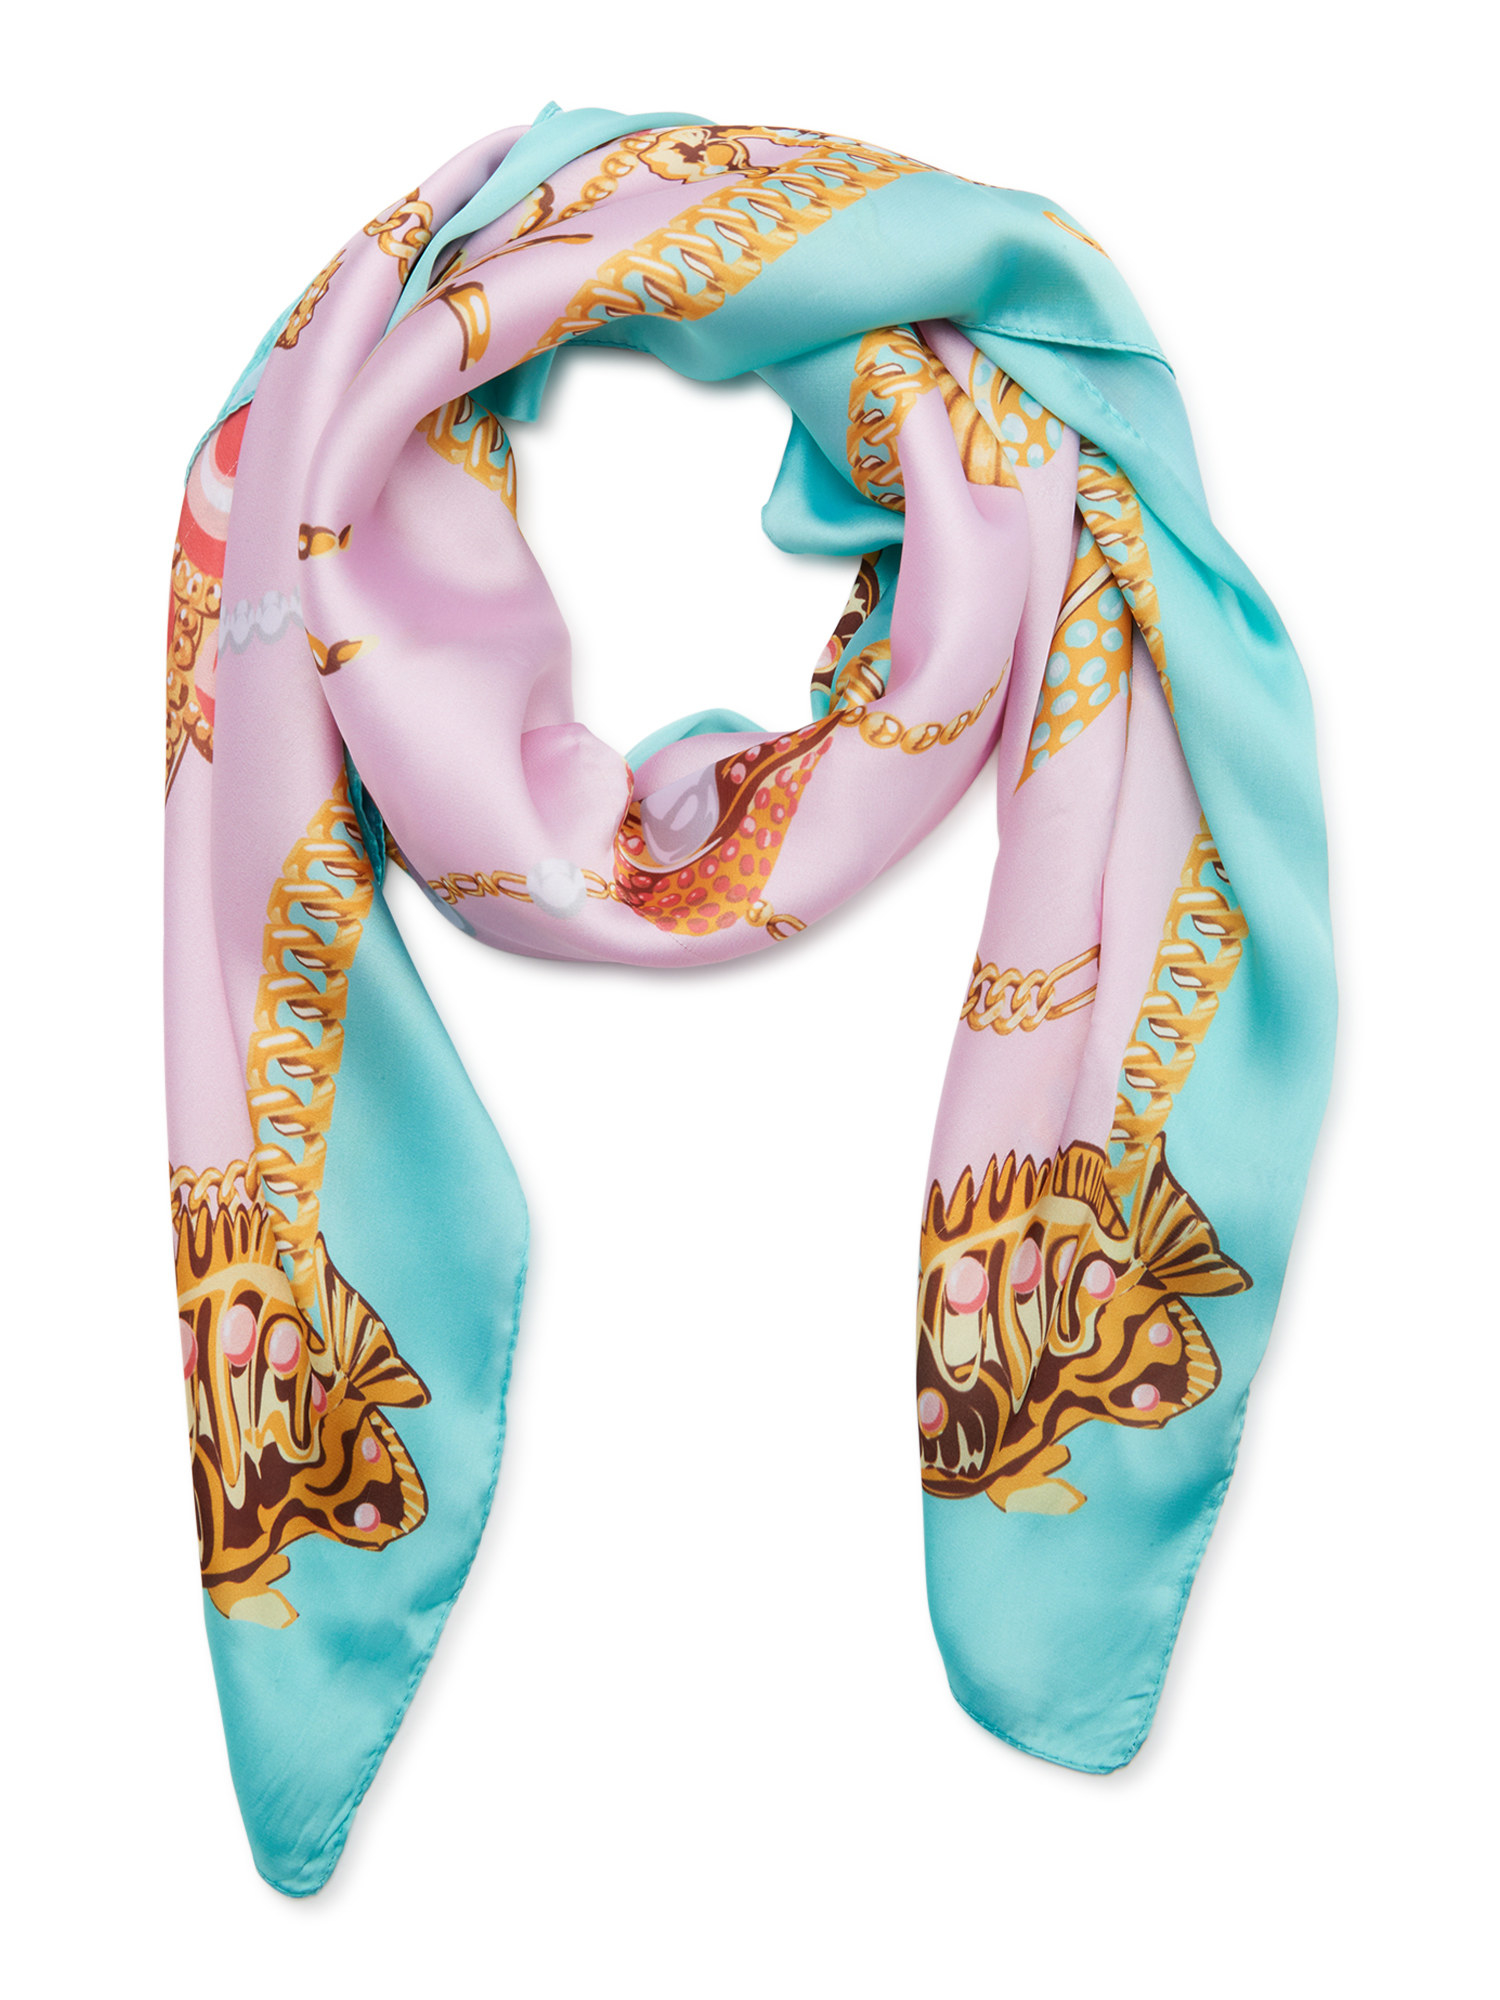 Pink, blue, and gold scarf.